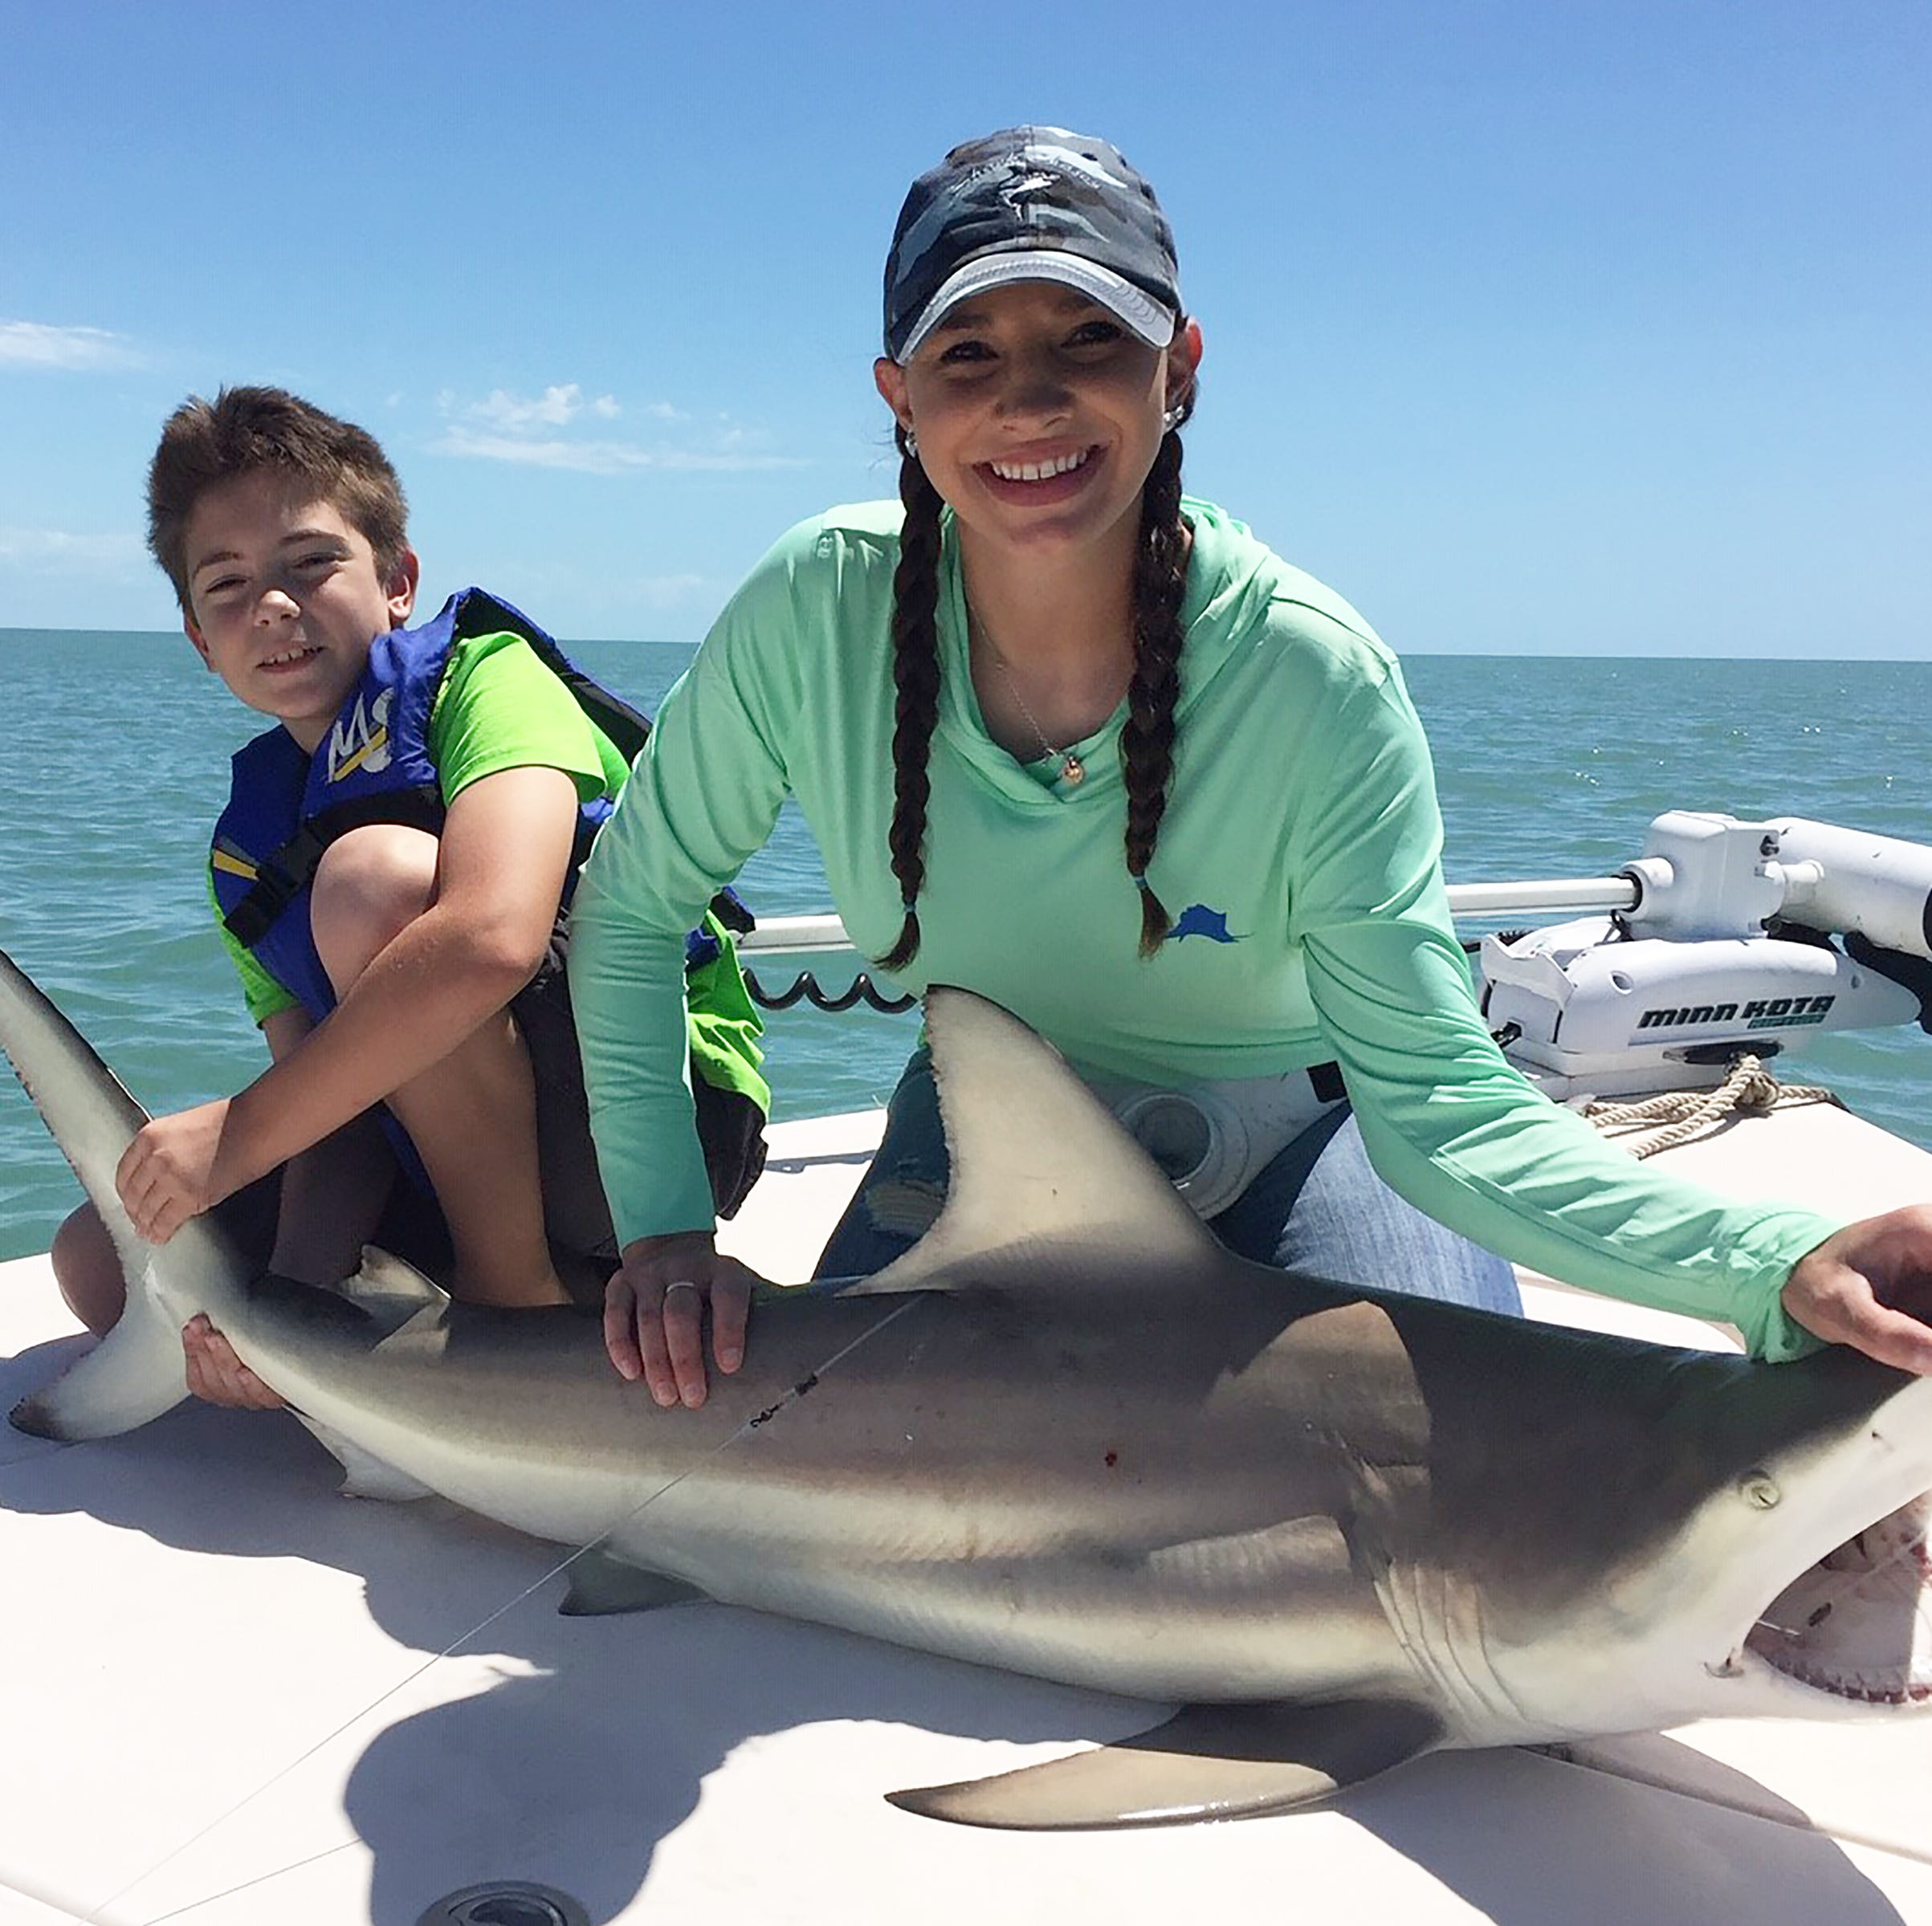 Fishingcast: Conditions for Southwest Florida, April 12-18